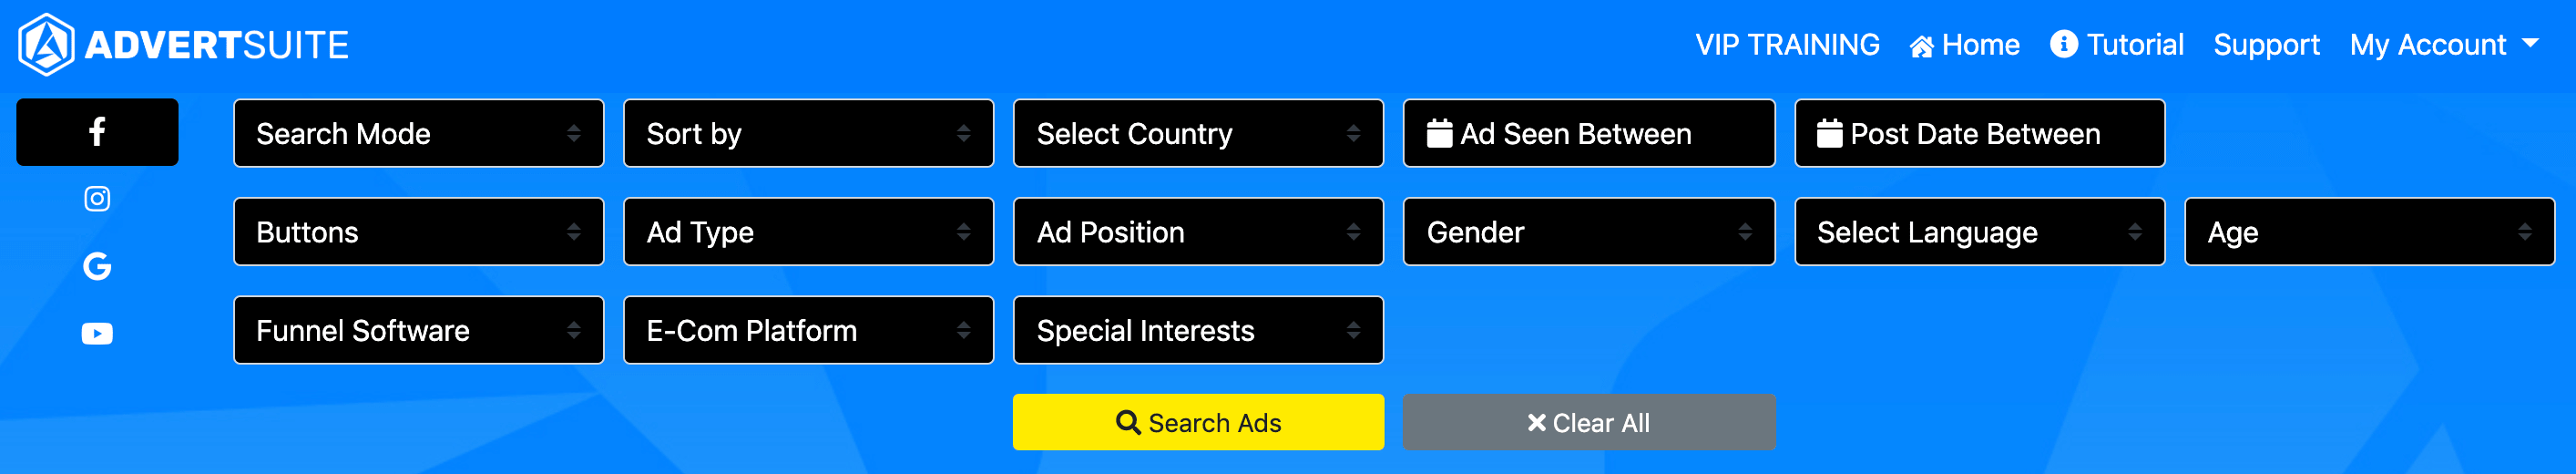 advertsuite search filters